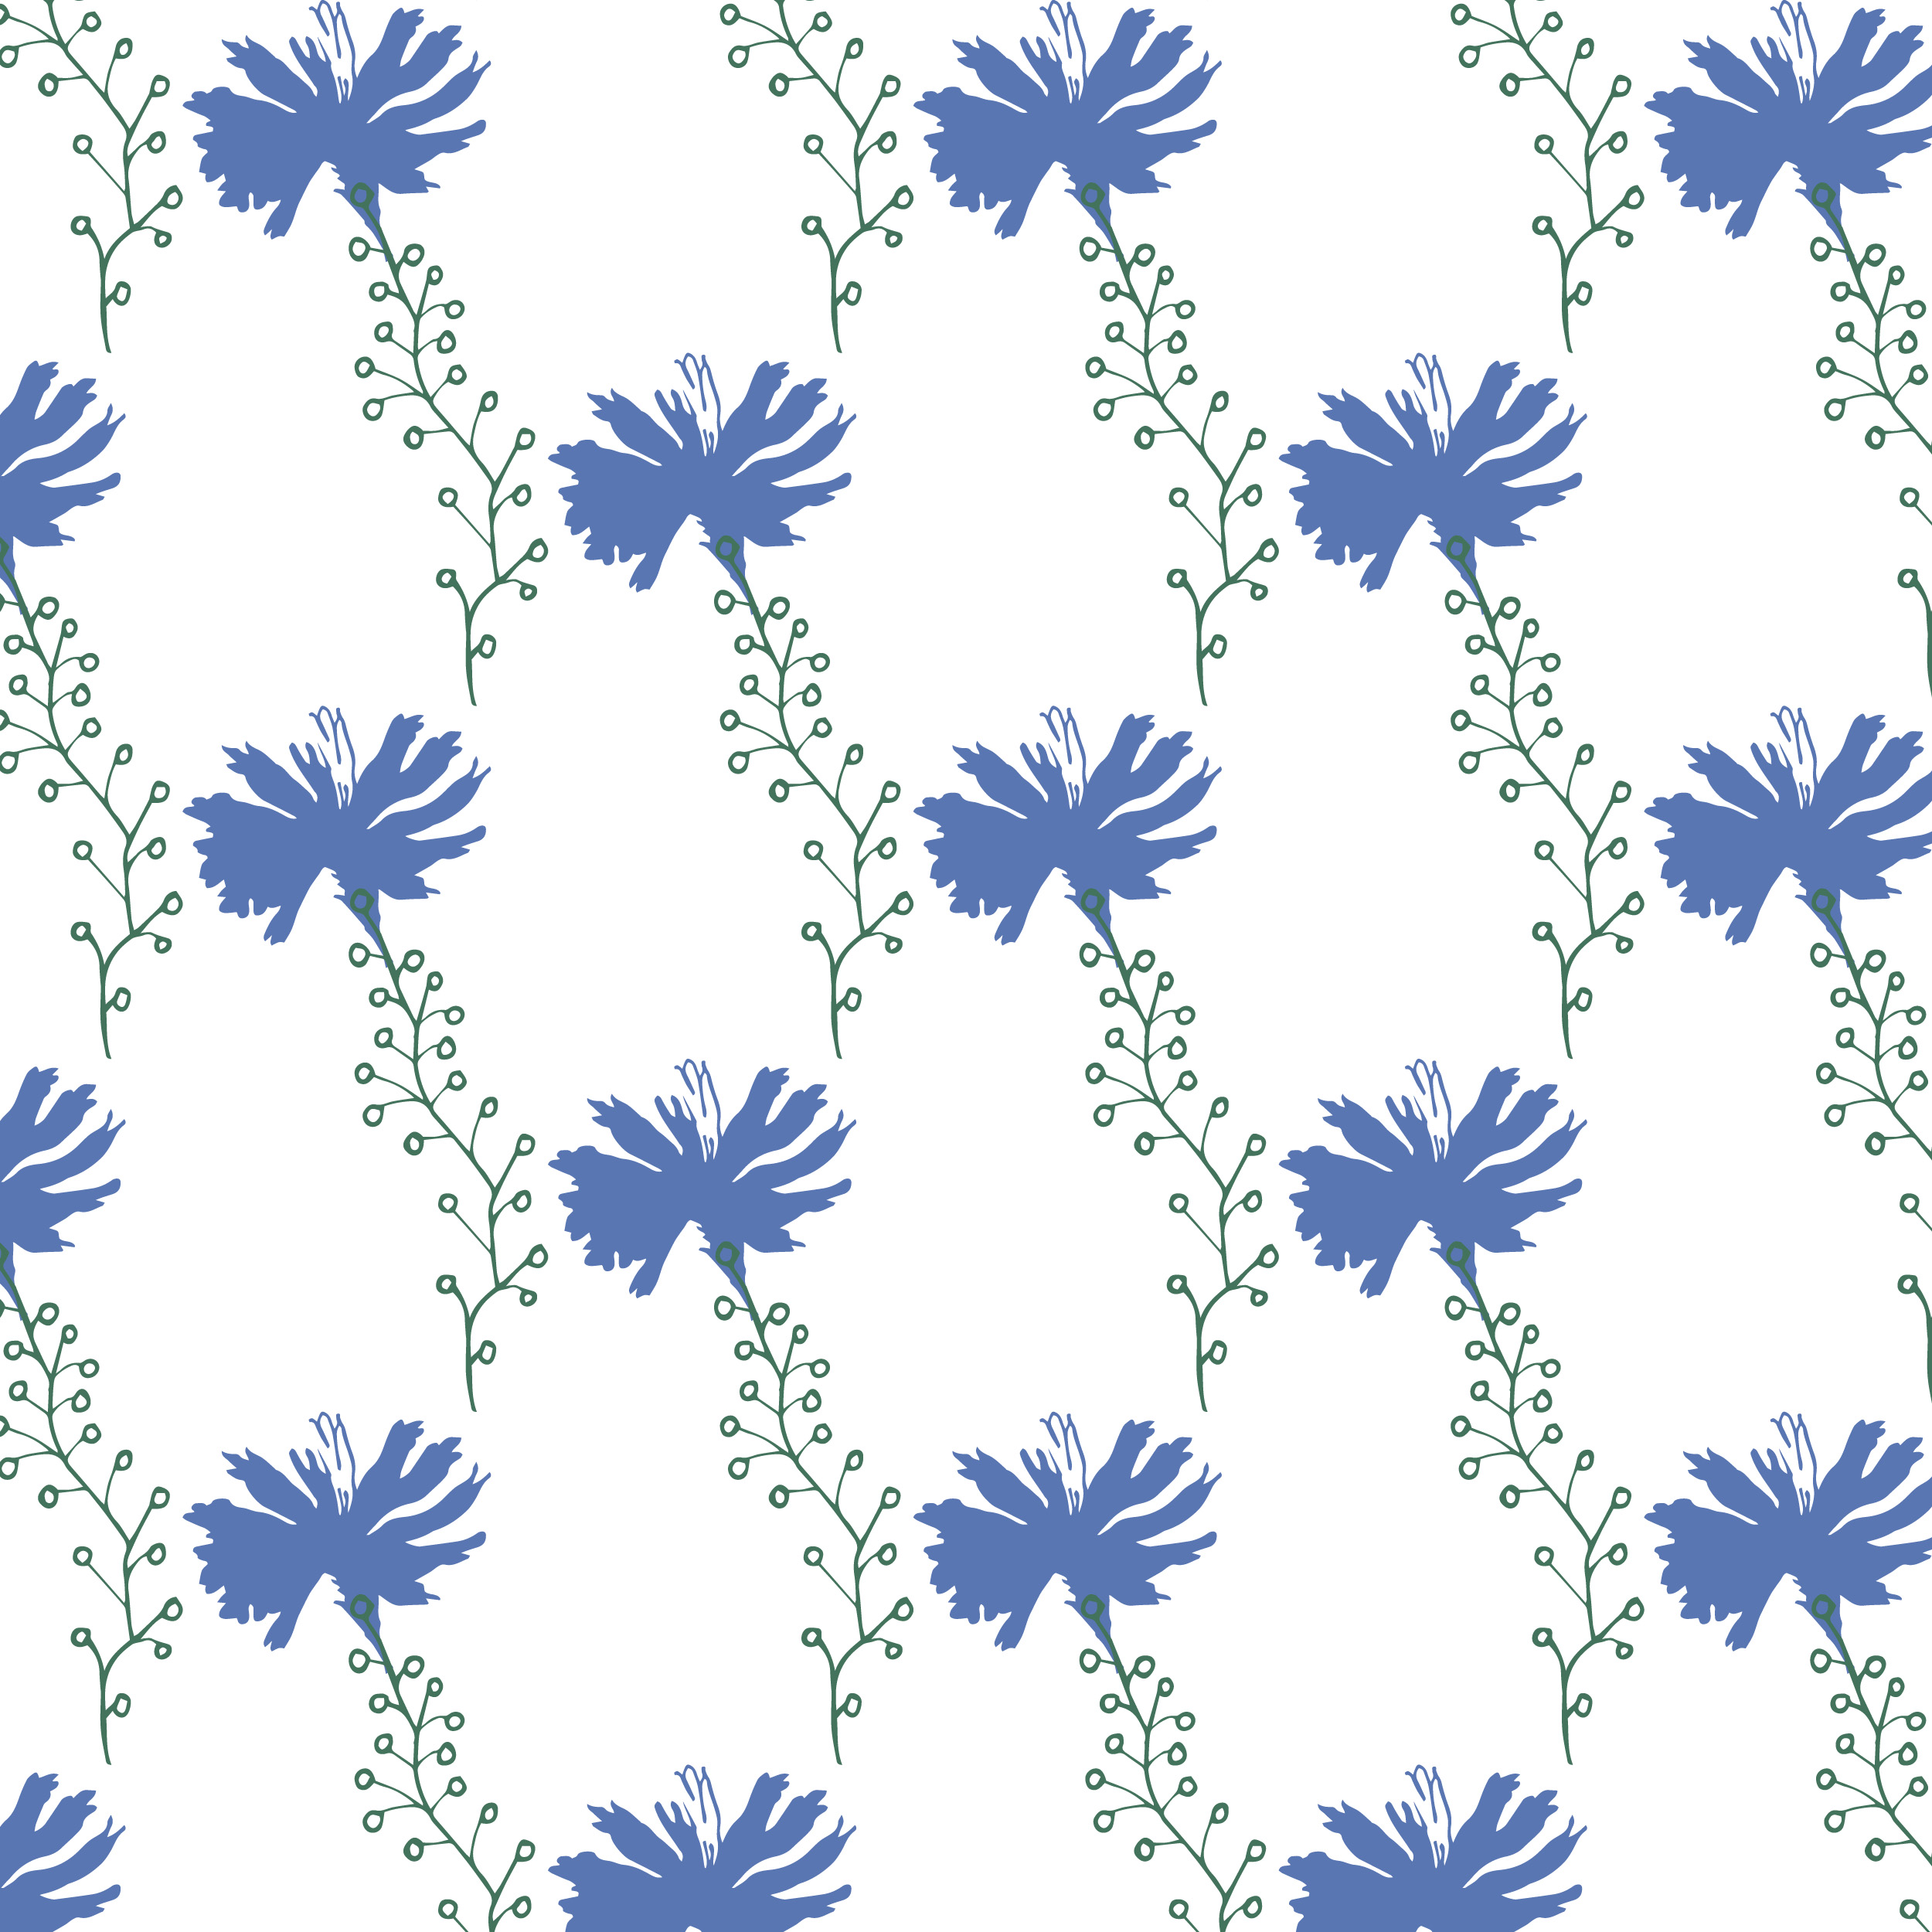 8 Spring Patterns example image 9